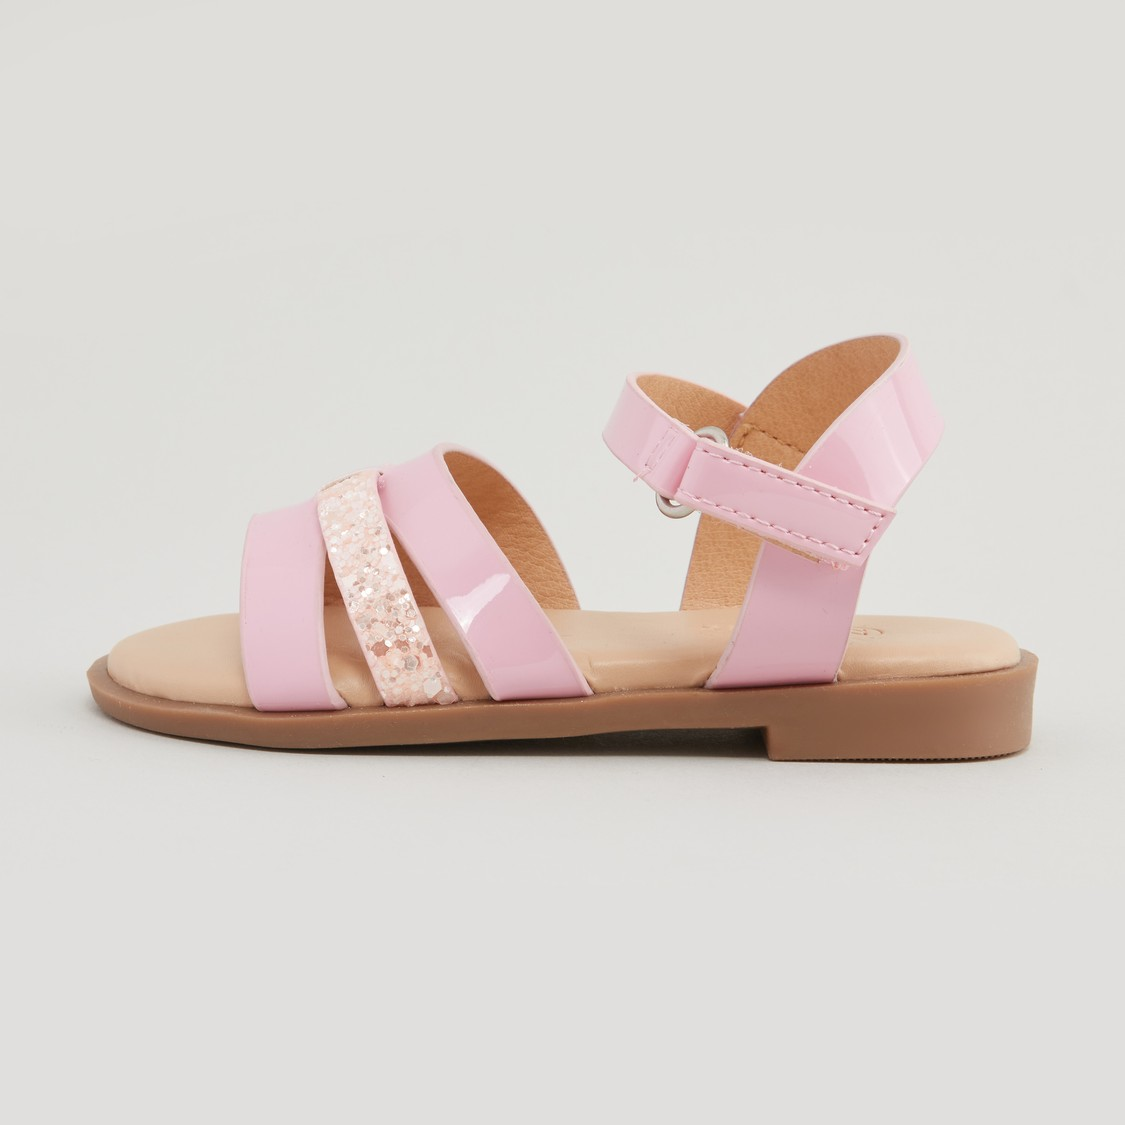 Multi-Strap Sandals with Hook and Loop Closure